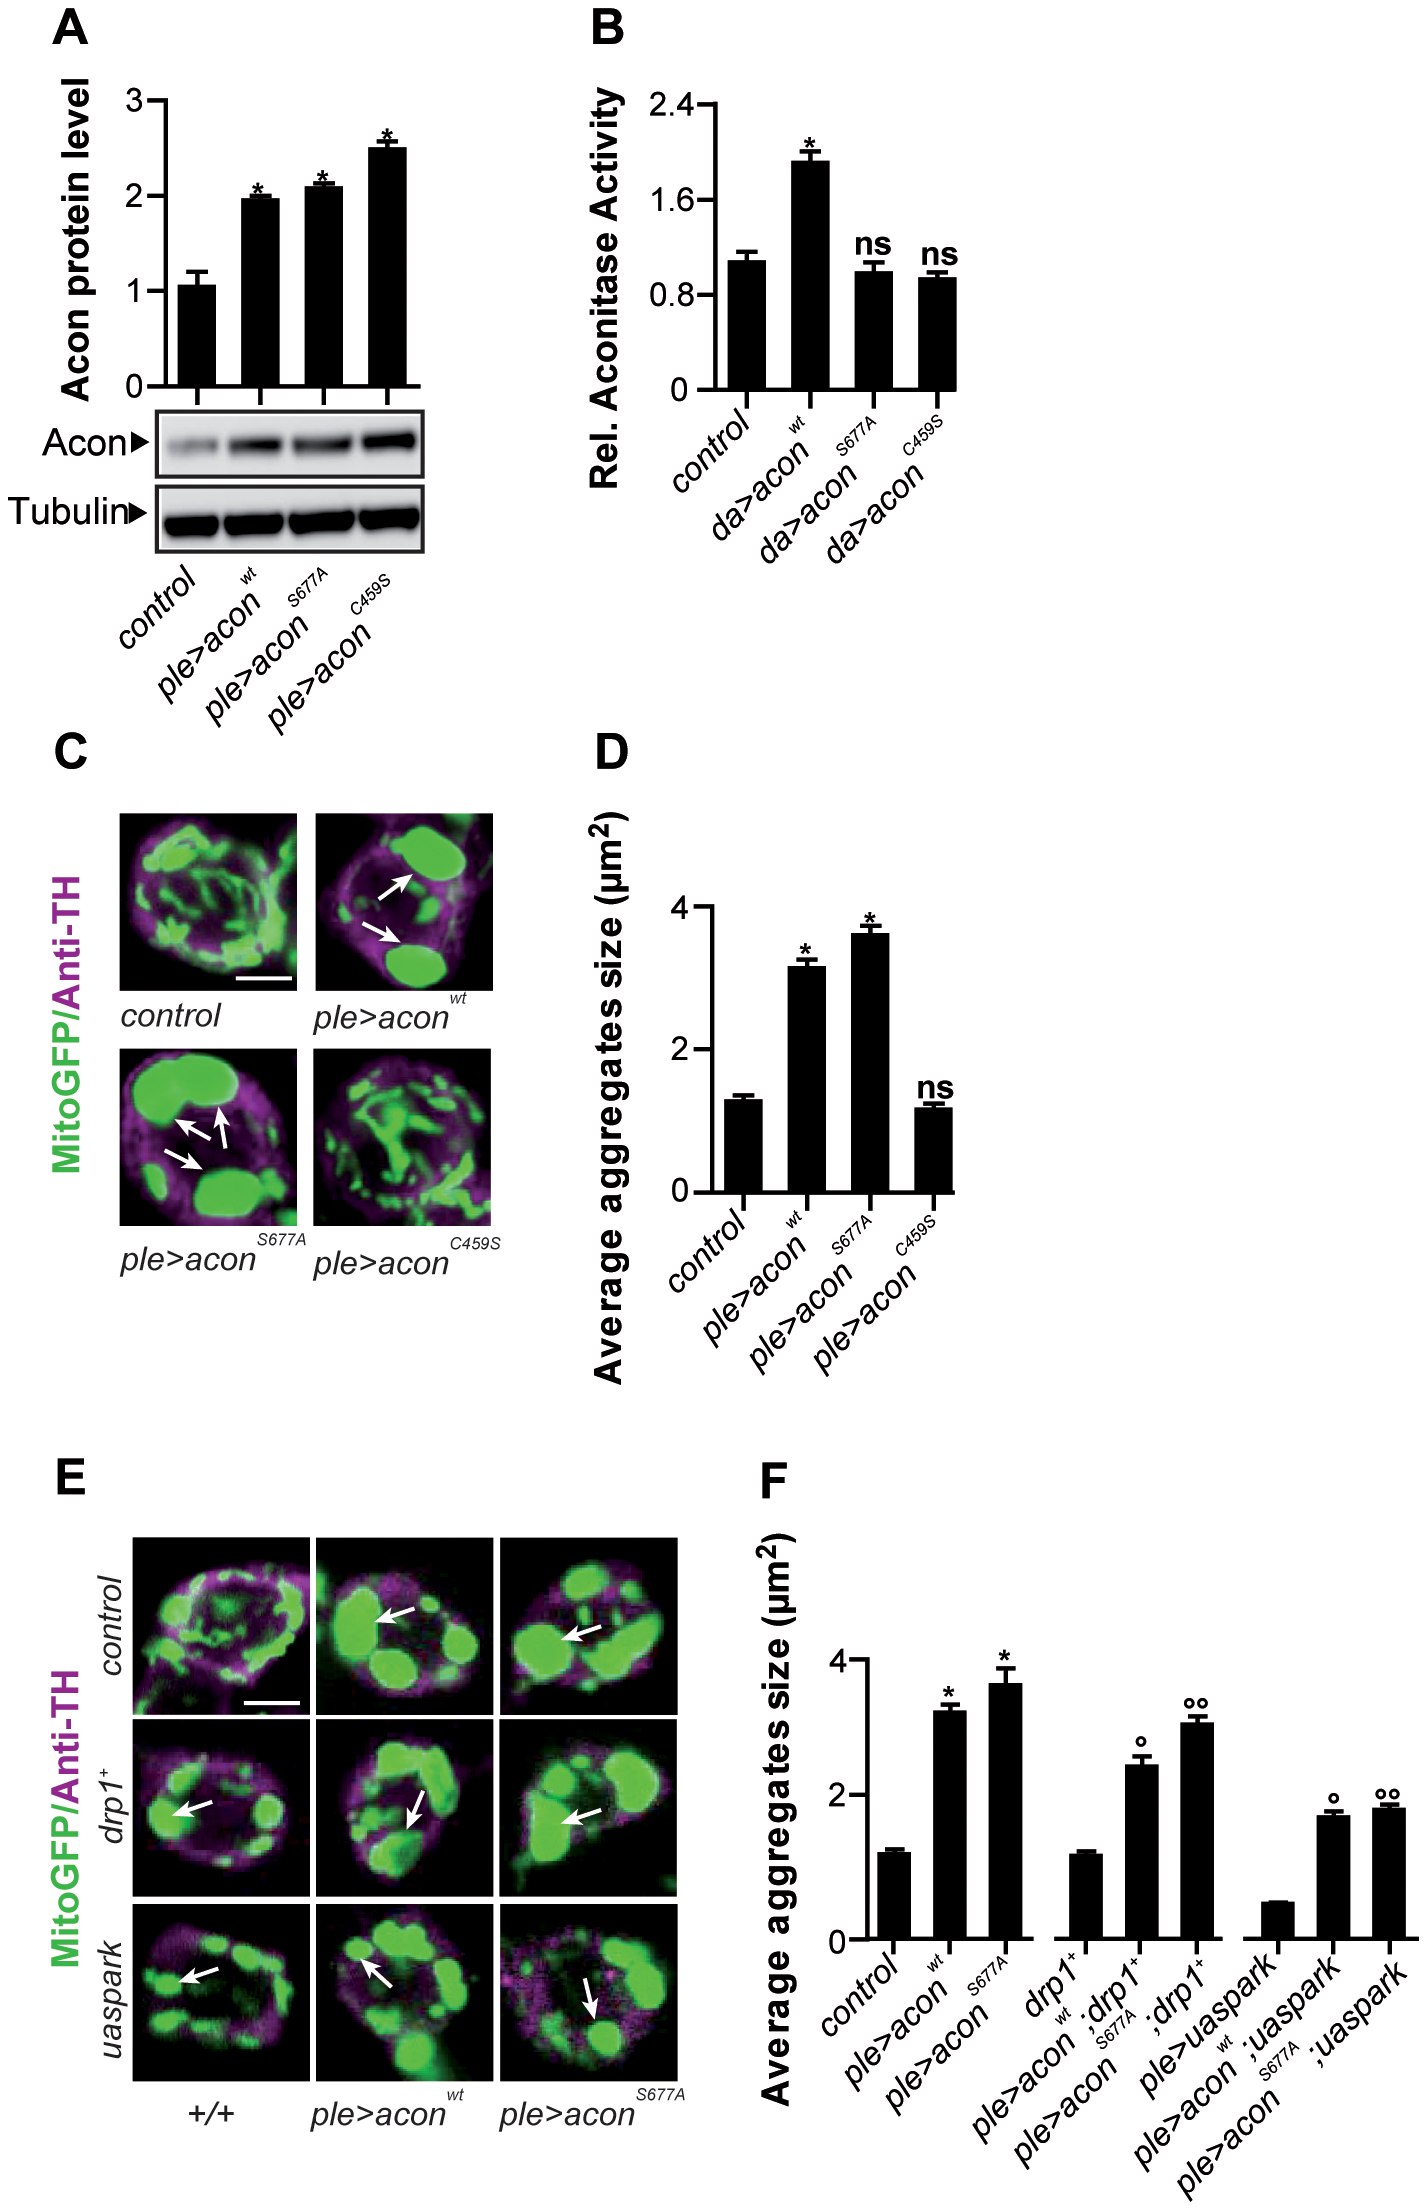 Acon[4Fe-4S] cluster induces mitochondrial defect in DA neurons that is not rescued by increased mitophagy.